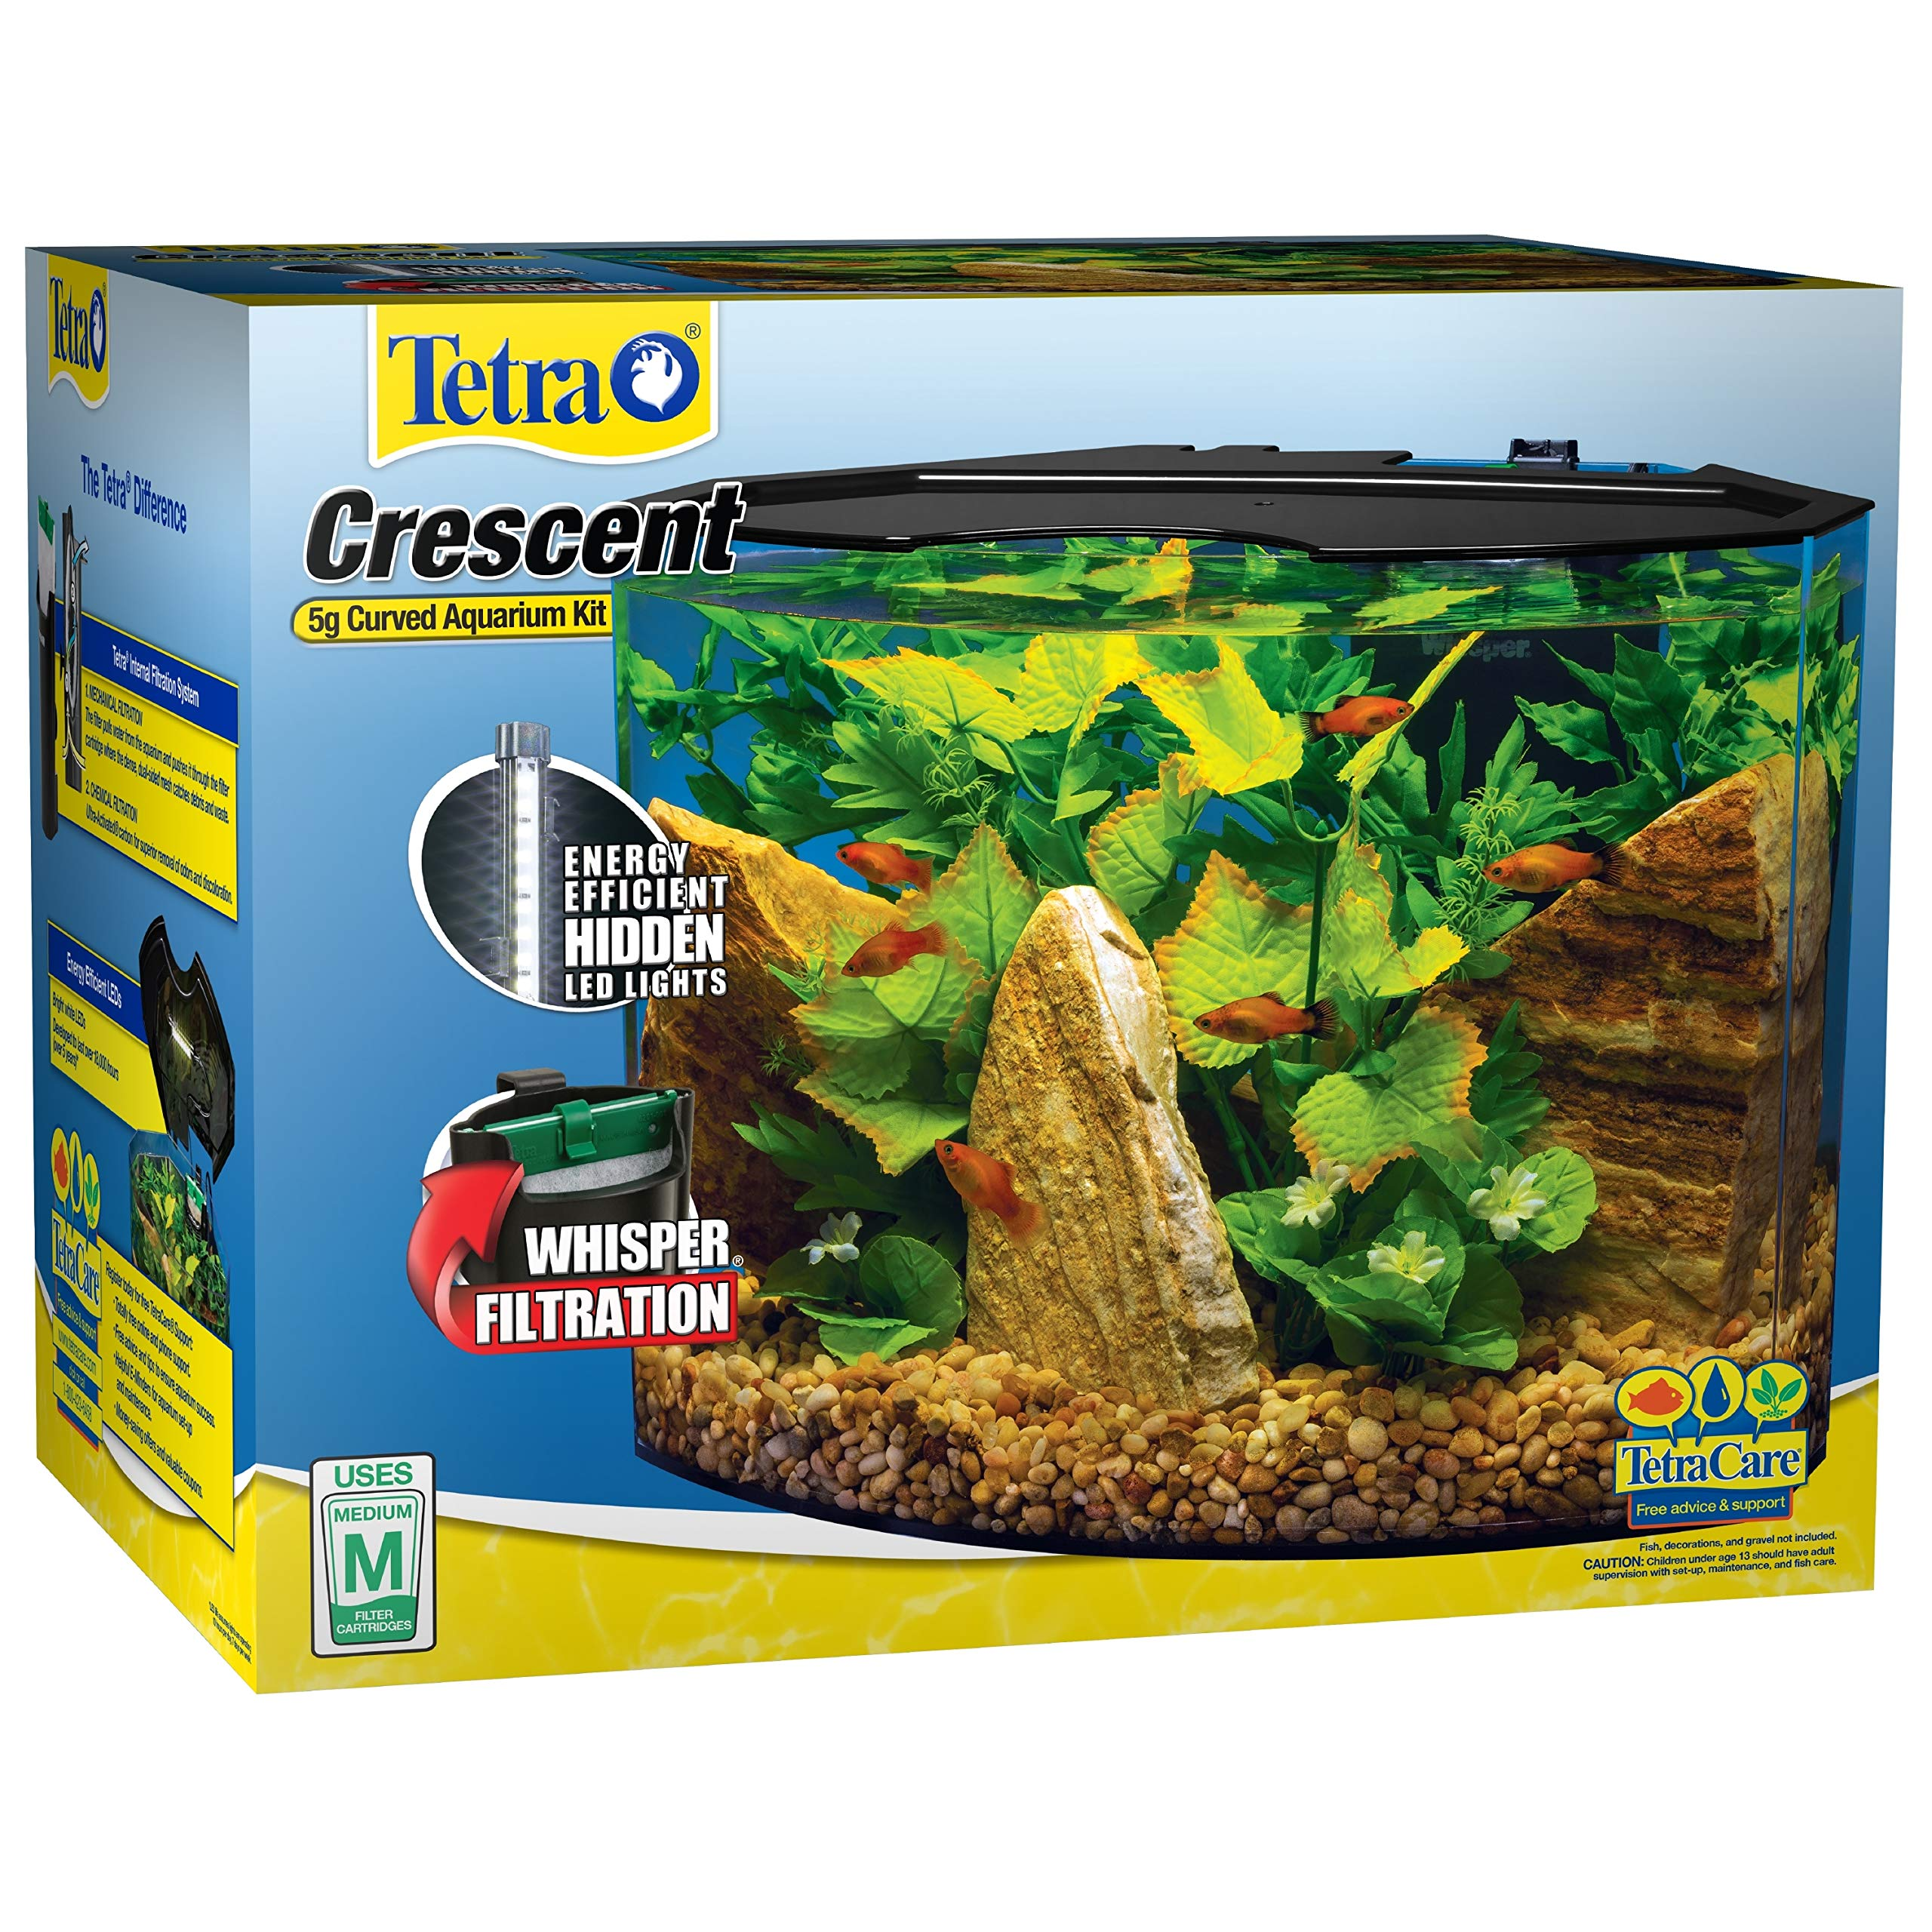 Tetra Crescent Acrylic Aquarium Kit, Energy Efficient LEDs, 5-Gallon by Tetra